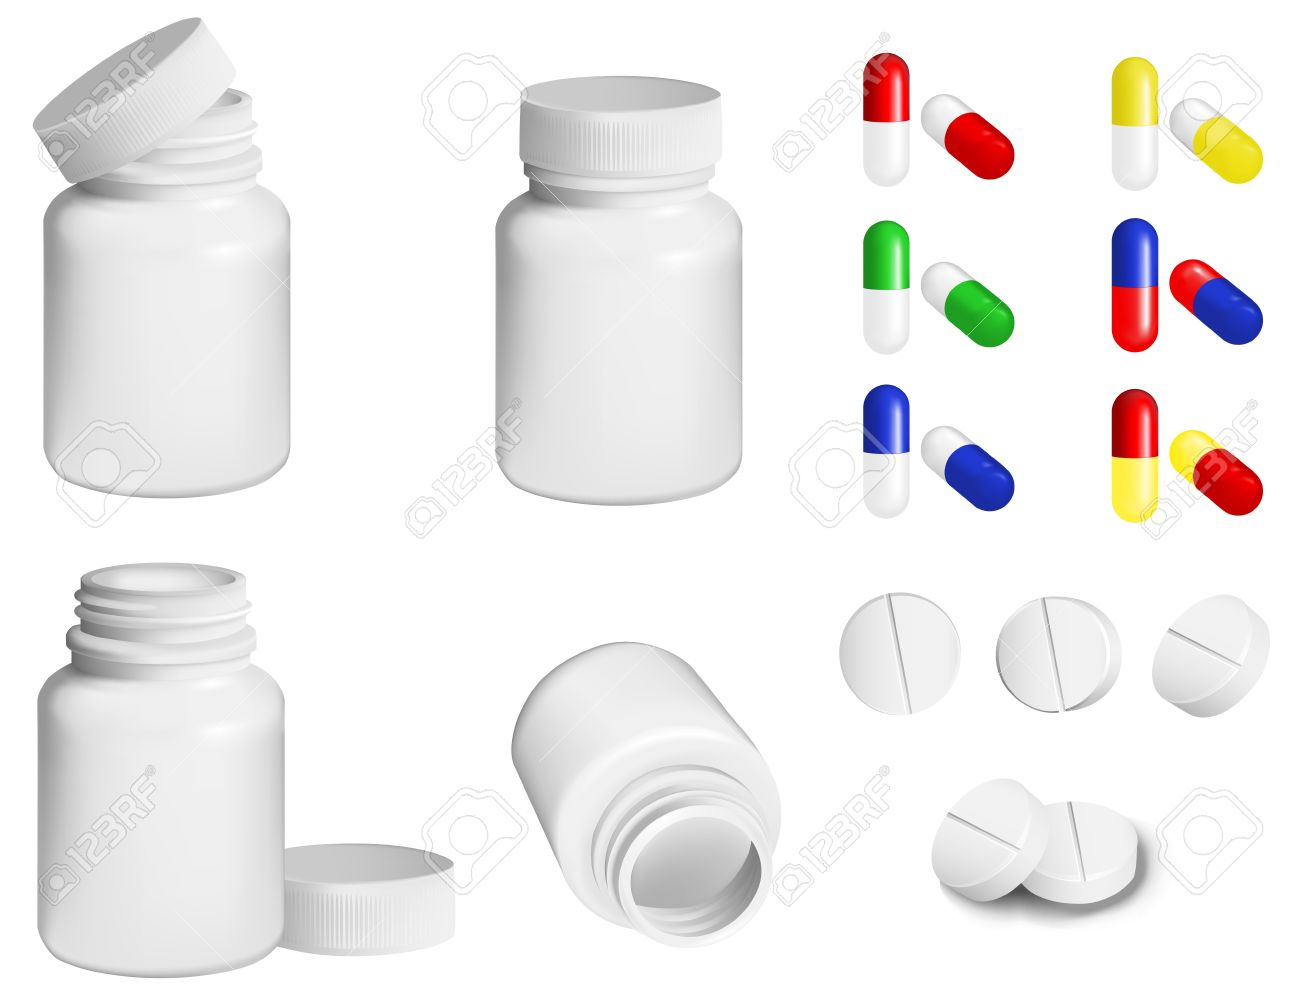 Bottle for medicines and set of various pills and tablets Stock Vector - 11989805